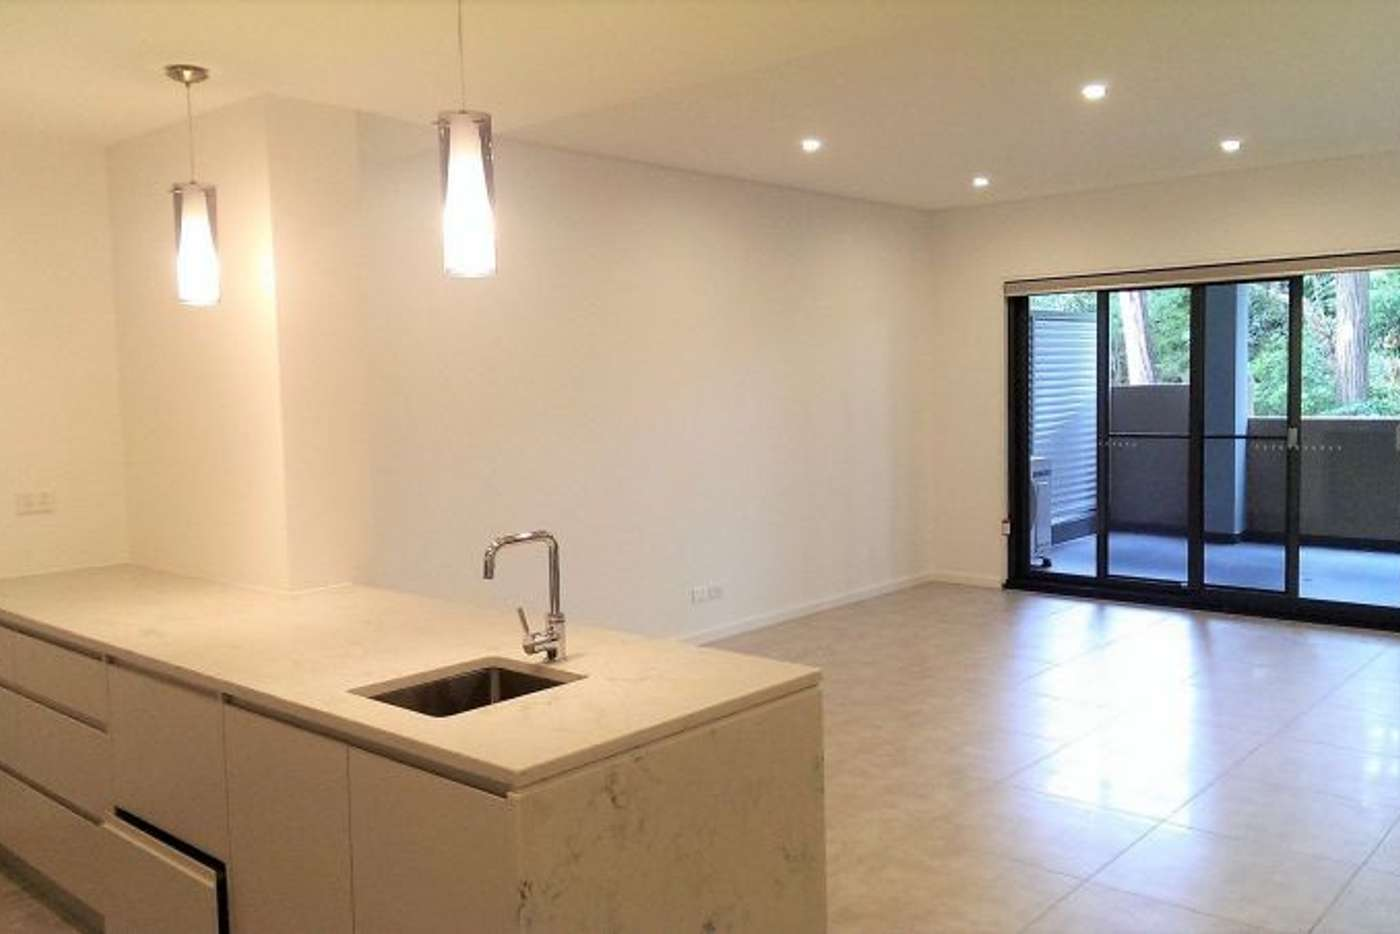 Fifth view of Homely apartment listing, 54/44-52 Kent Street, Epping NSW 2121